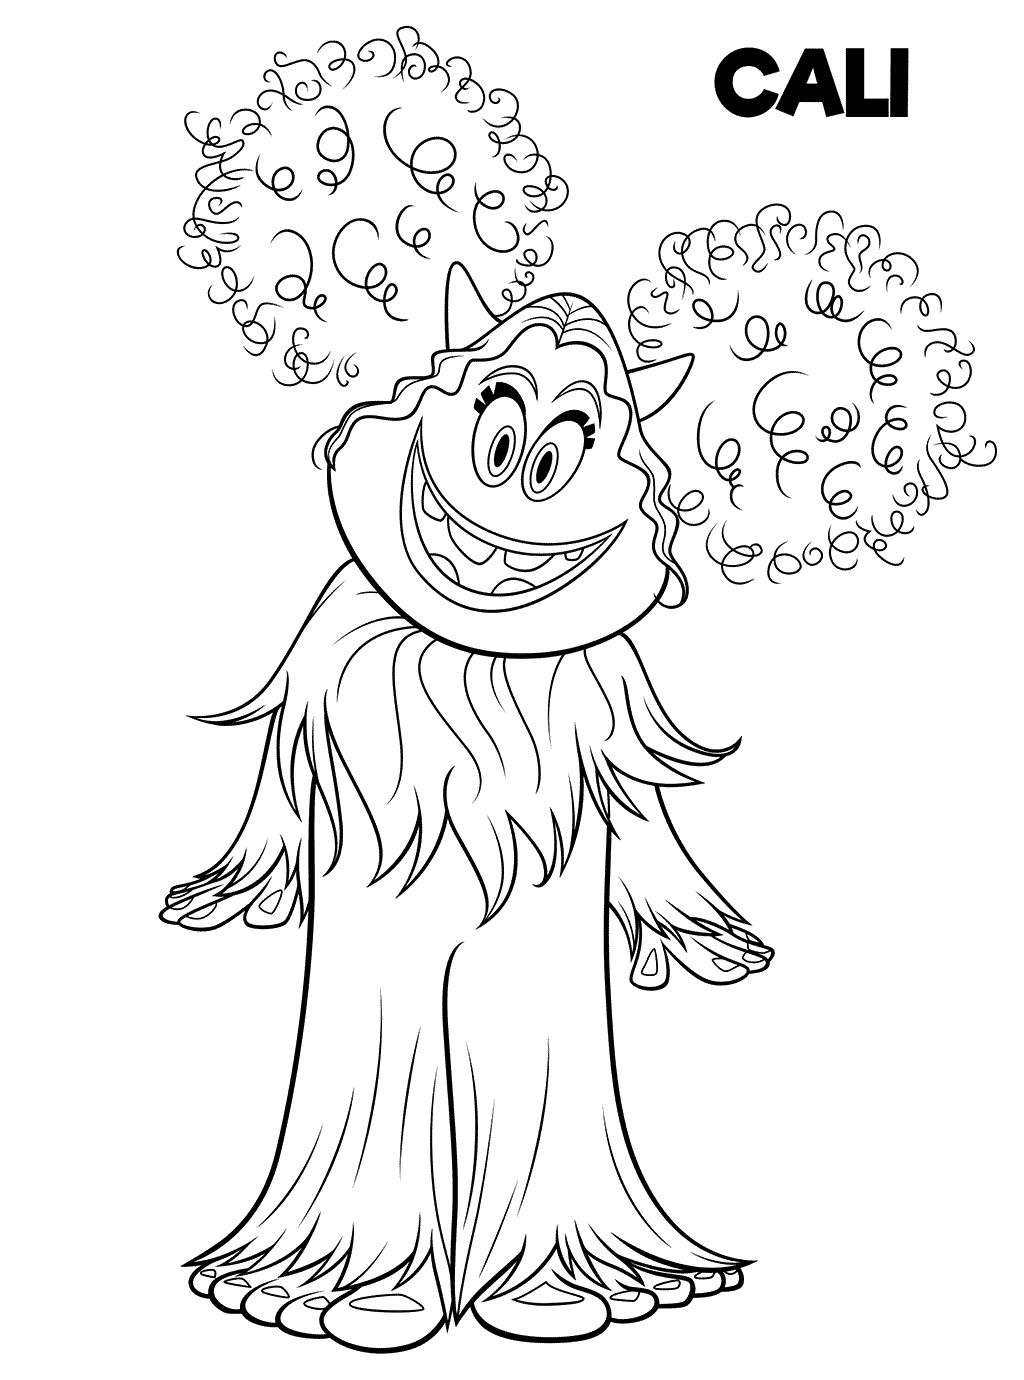 fun colouring pages for kids kids n funcom 6 coloring pages of smallfoot colouring pages fun kids for